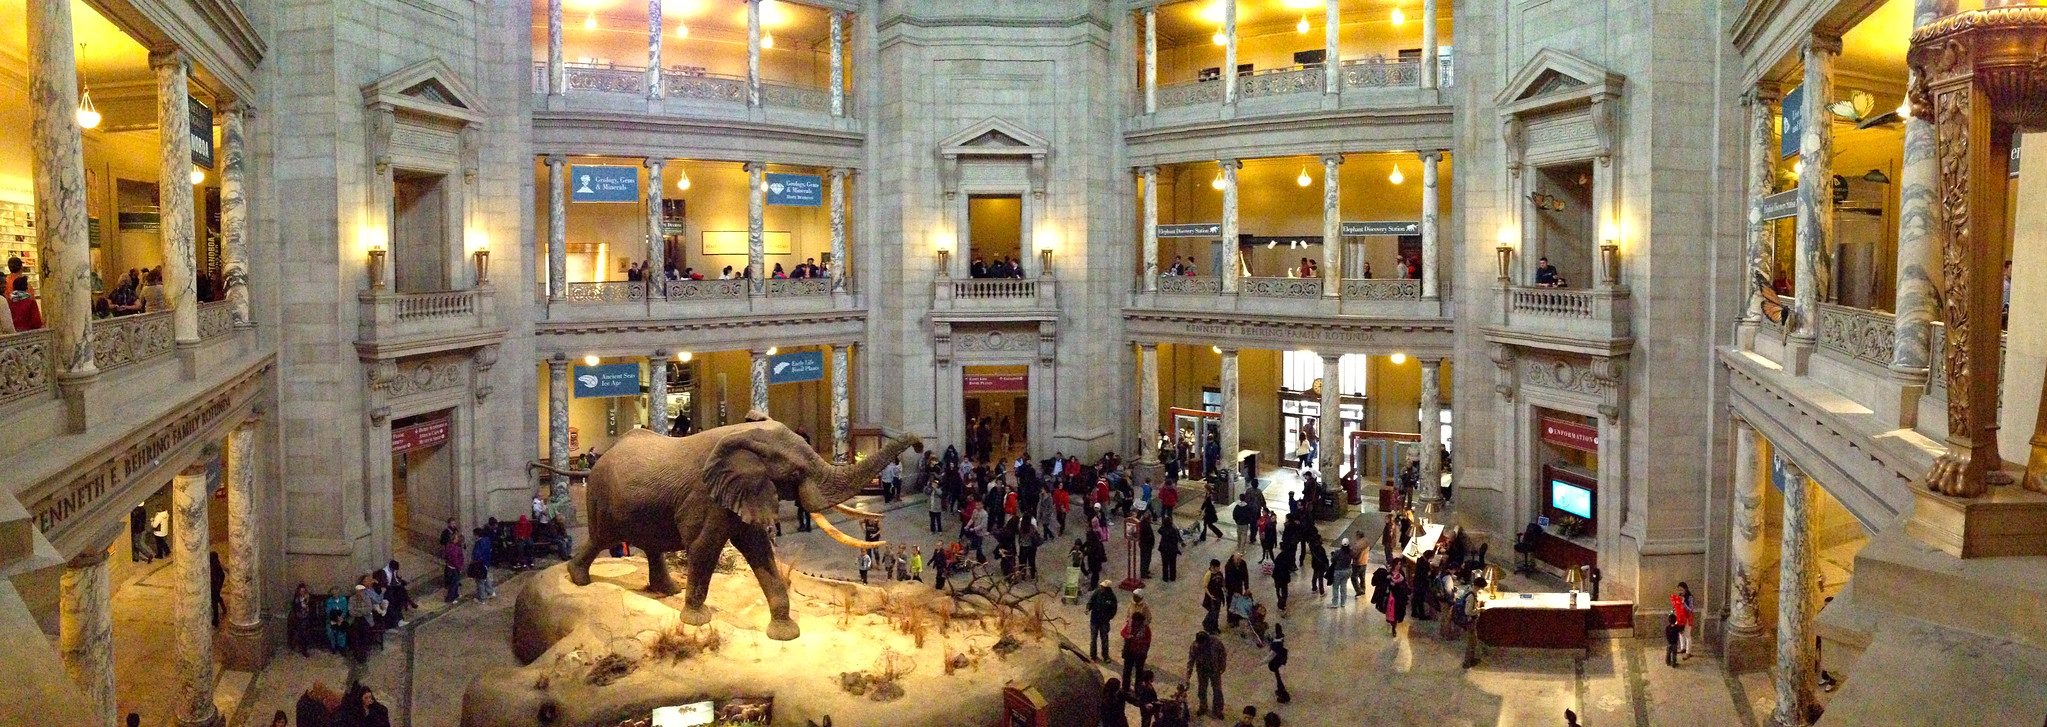 Photo credit: National Museum of Natural History in DC by Blake Patterson is licensed under CC BY